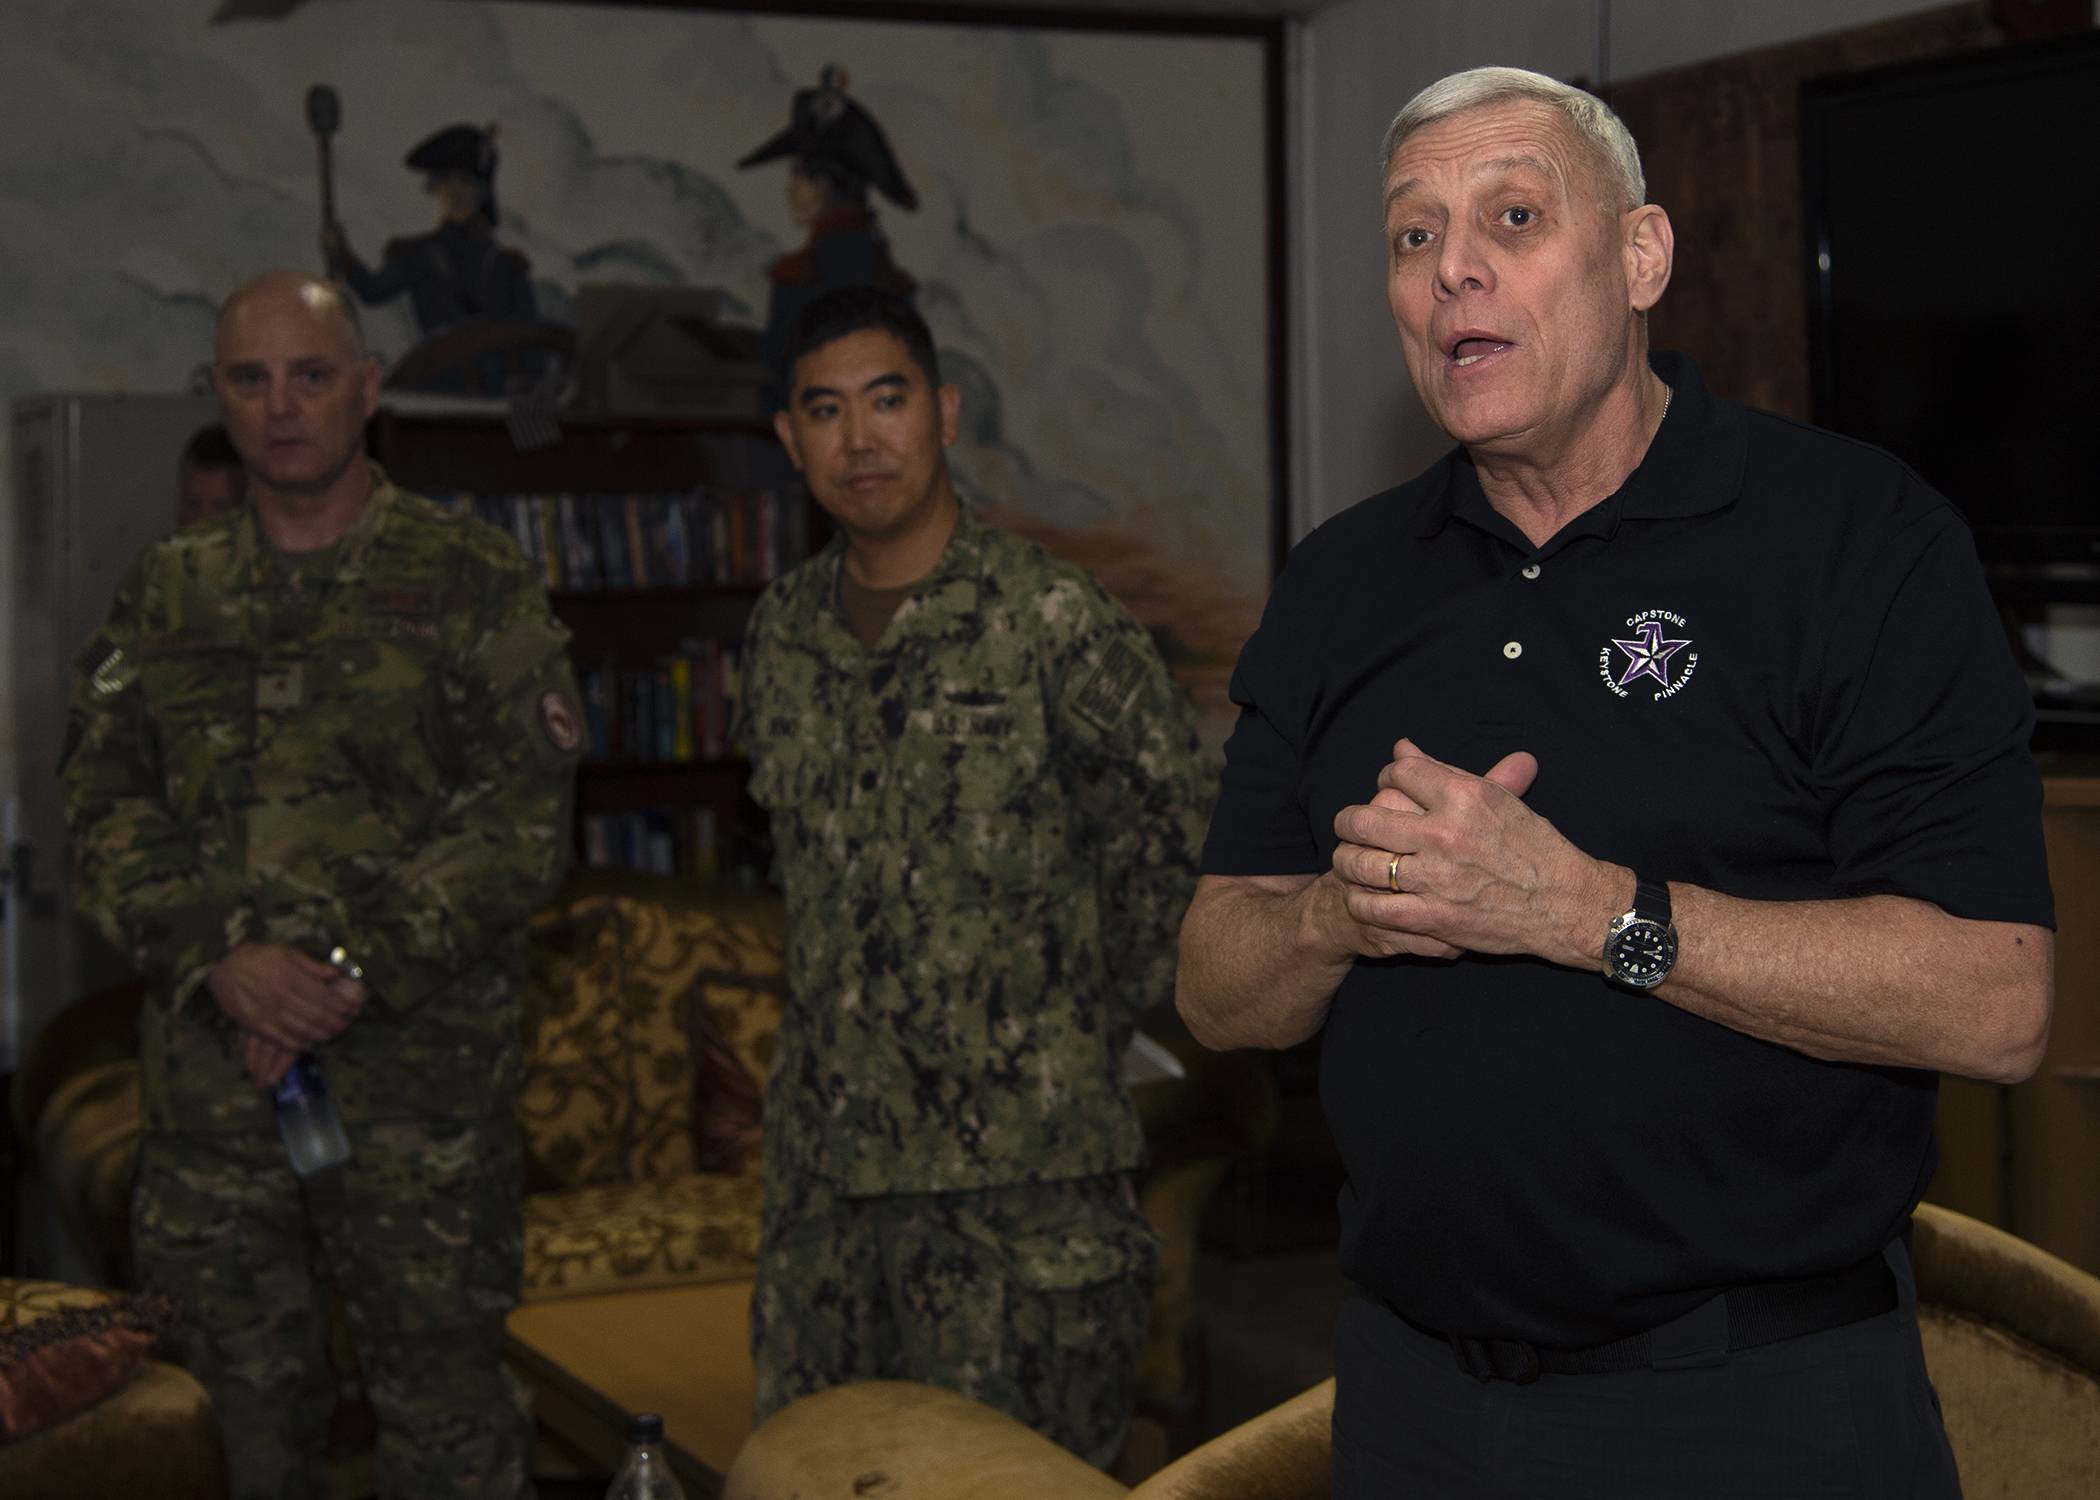 U.S. Marine Corps Gen. (ret.) John Paxton speaks at a meet-and-greet as part of the Capstone Military Leadership Program at Camp Lemonnier, Djibouti, Feb. 13, 2019. Capstone is a joint-service professional military education course for newly-promoted brigadier generals and rear admirals serving in the U.S. military. (U.S. Navy photo by Mass Communication Specialist 1st Class Nick Scott)